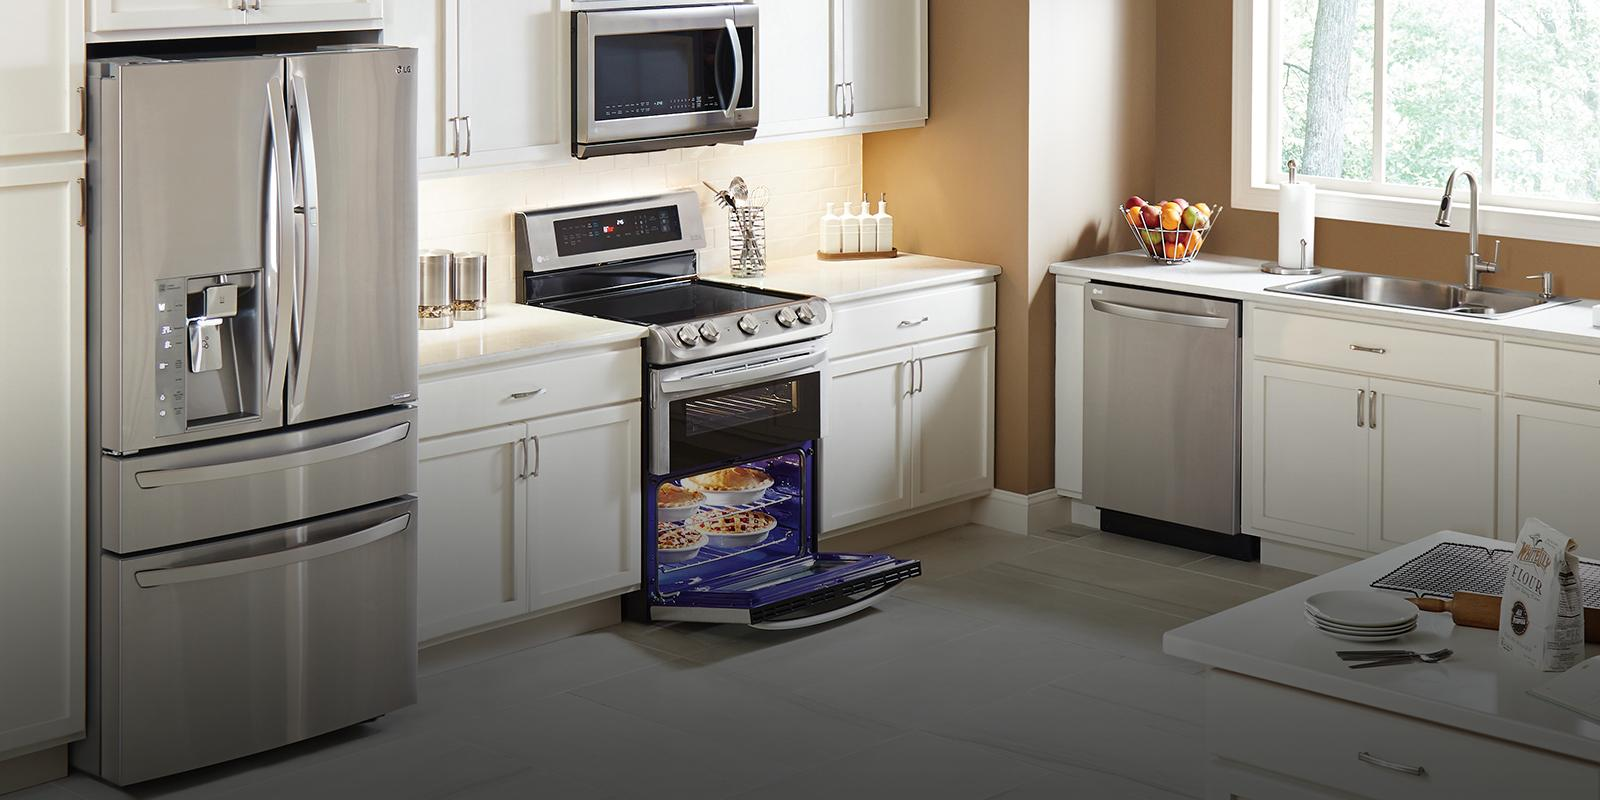 LG Appliances Compare Kitchen amp Home Appliances USA